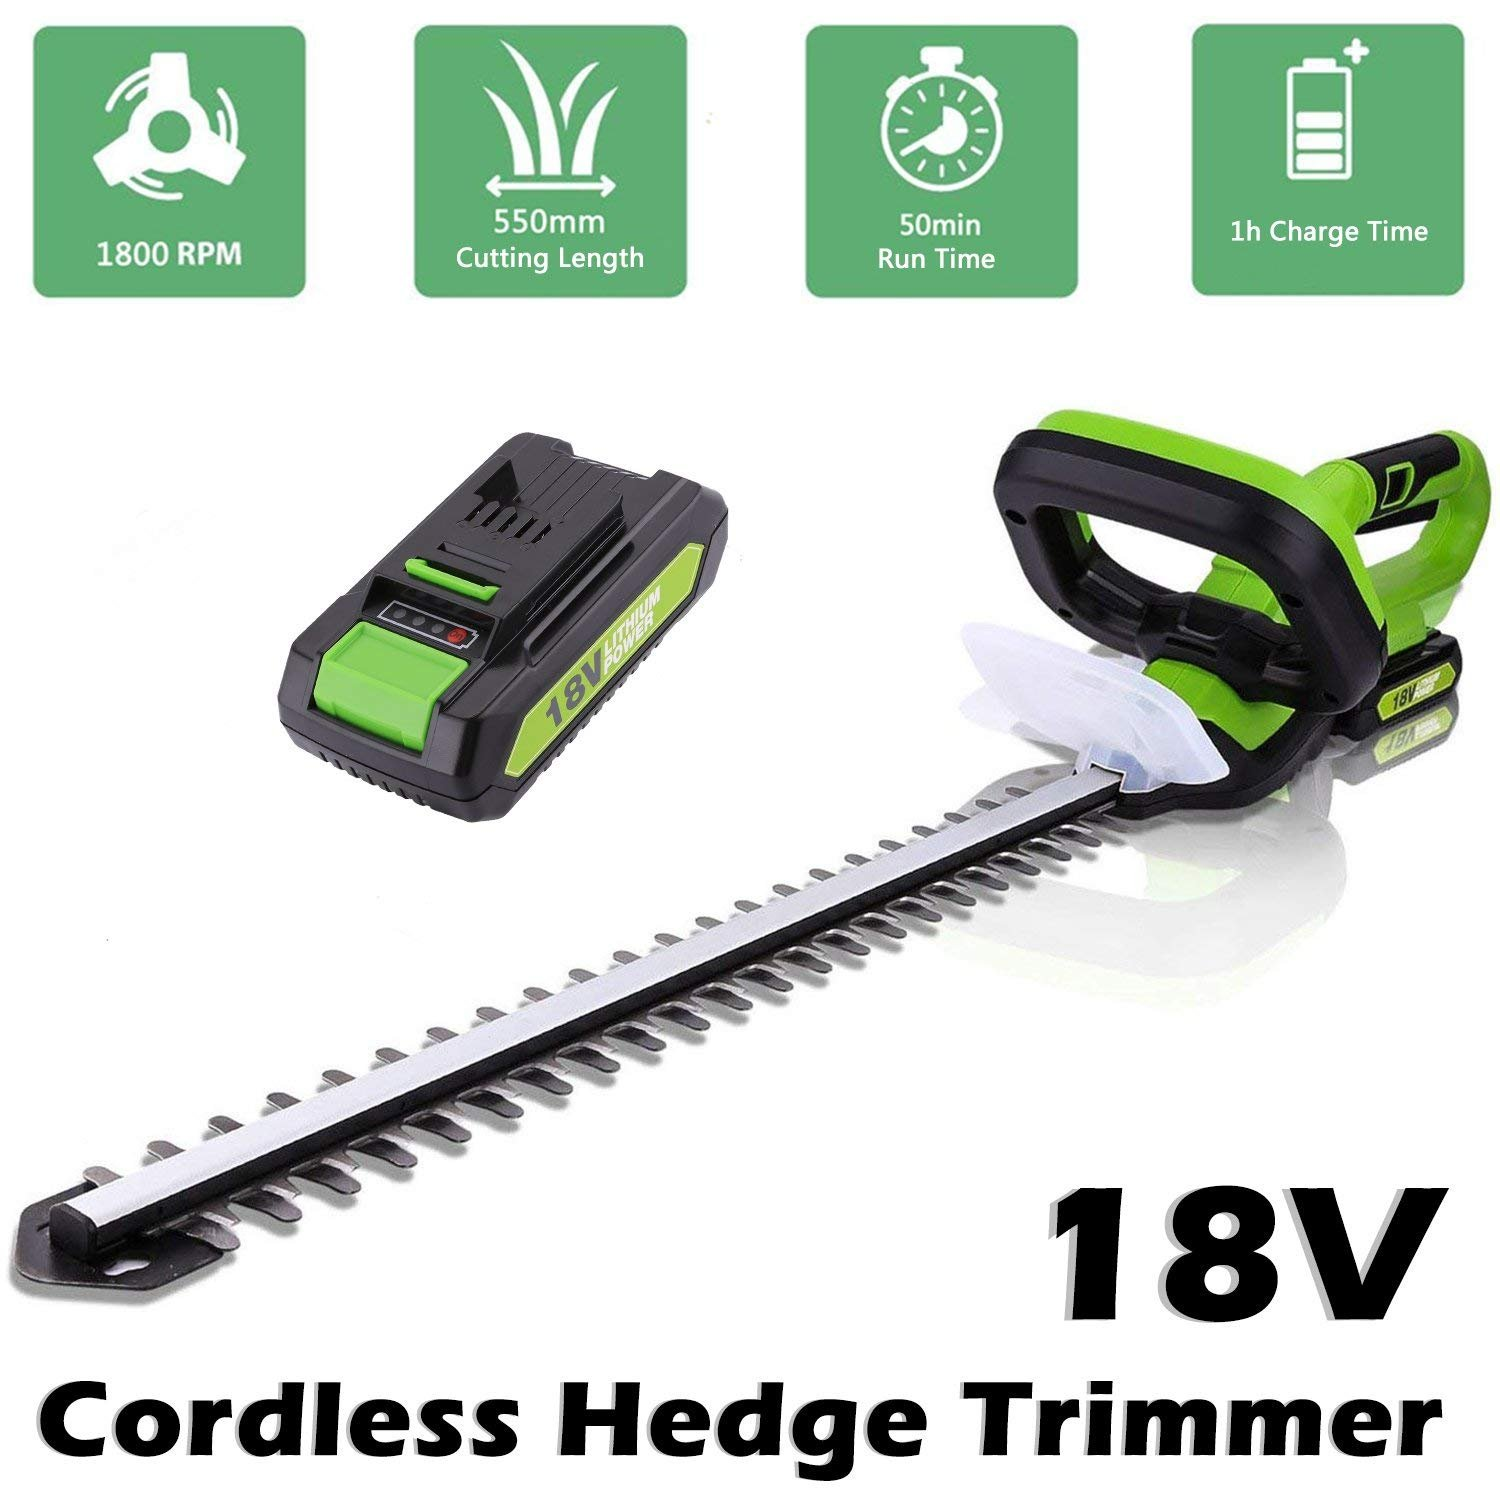 Ceanfly 18V Cordless Hedge Trimmer Electric Hedge Cutter With 15mm Tooth Spacing, 24.4 Inch Cutter Rail Length, Lithium-Ion Battery Charger For Garden Hedge Cutting